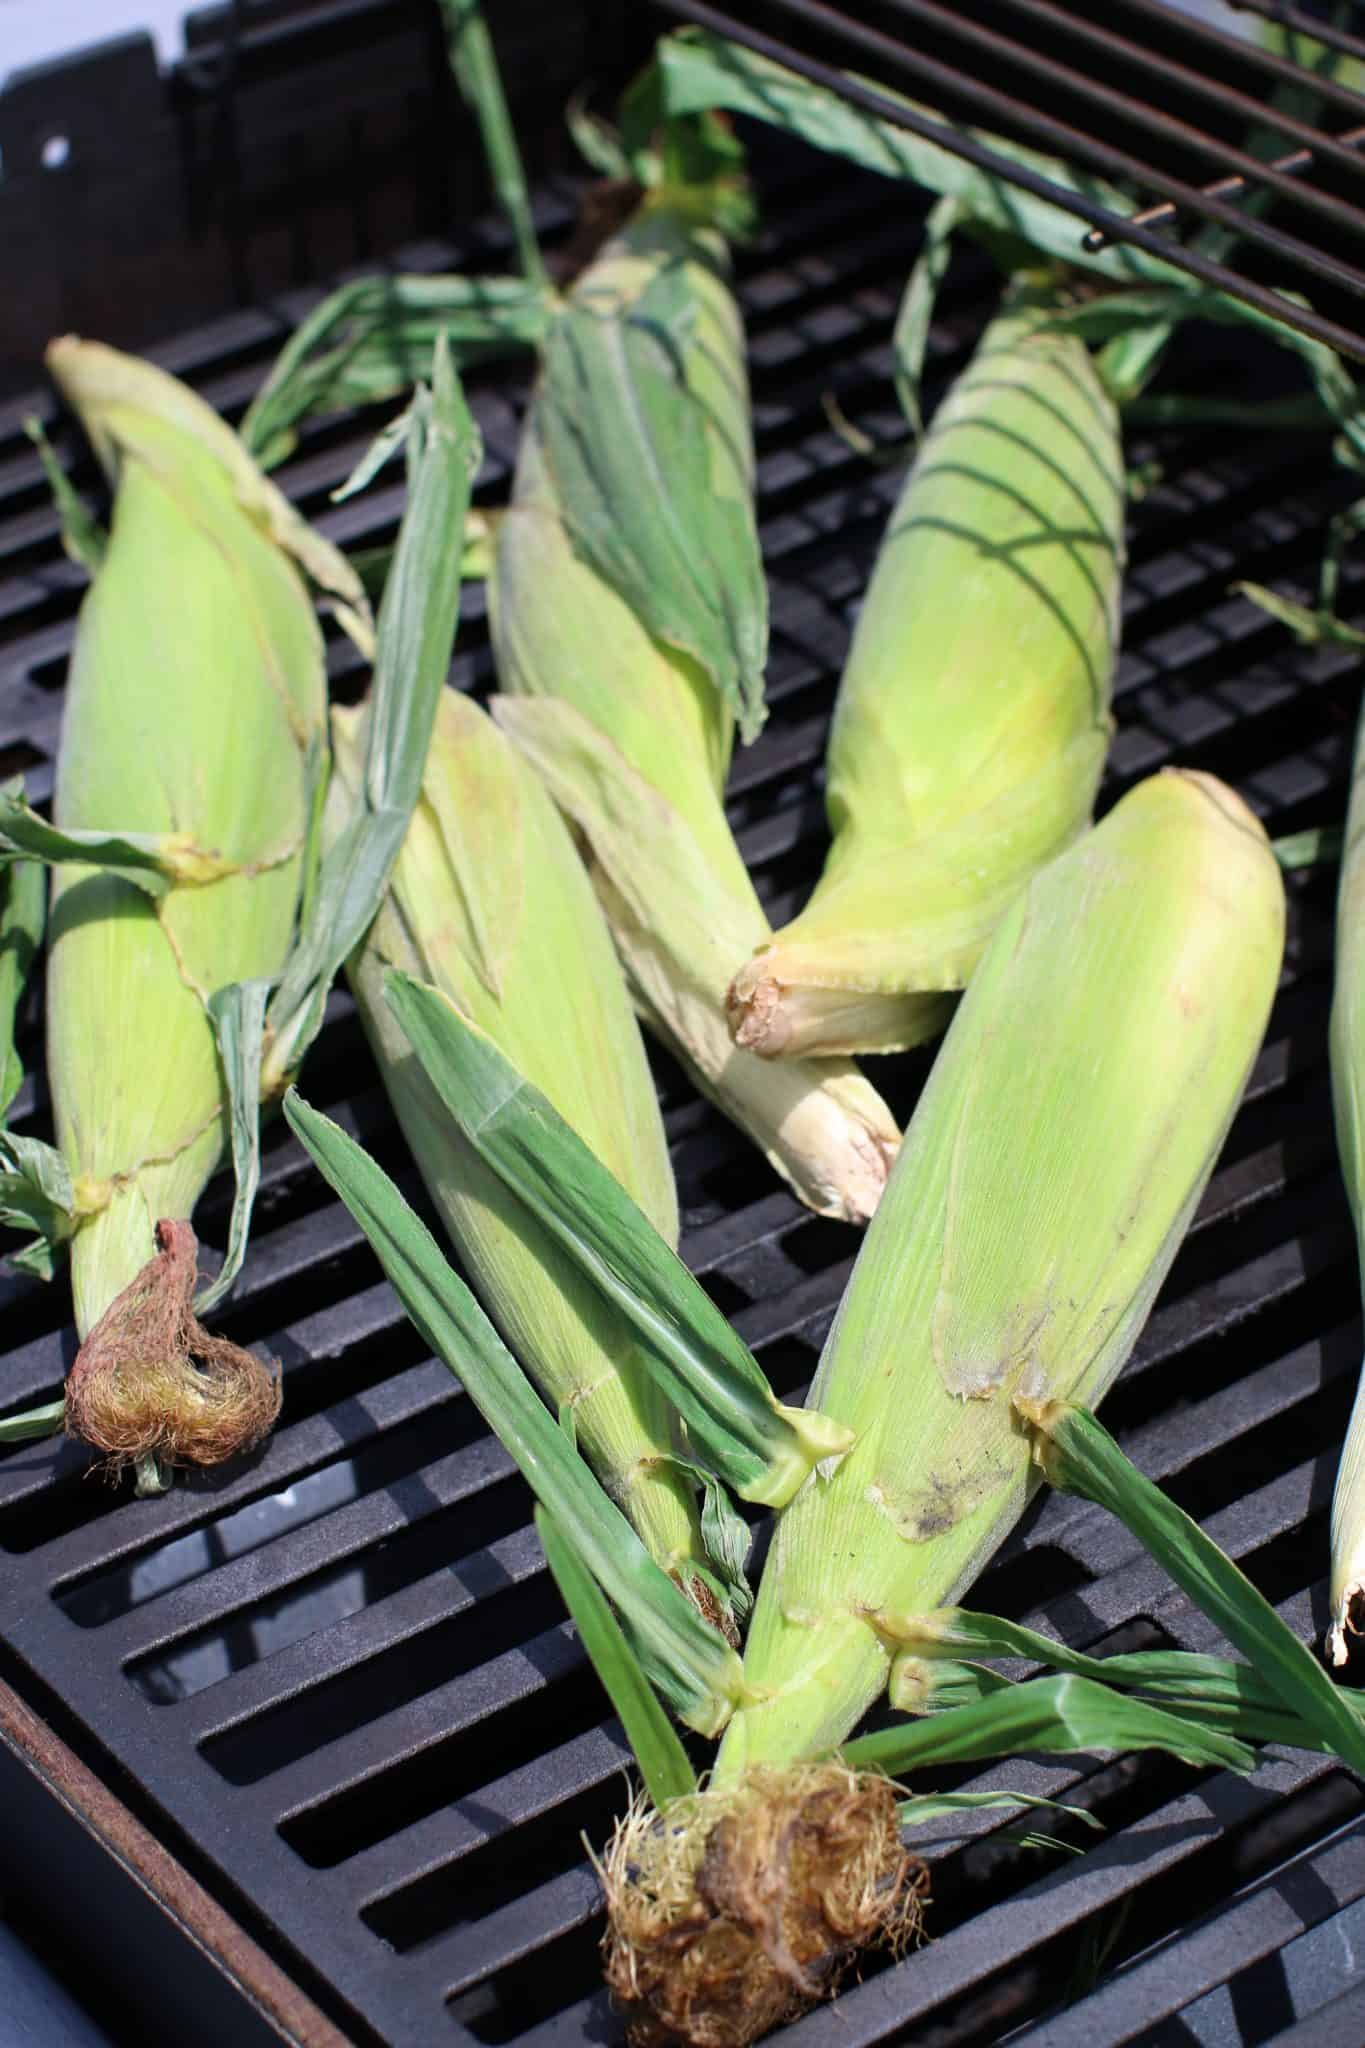 corn in husks on a grill.